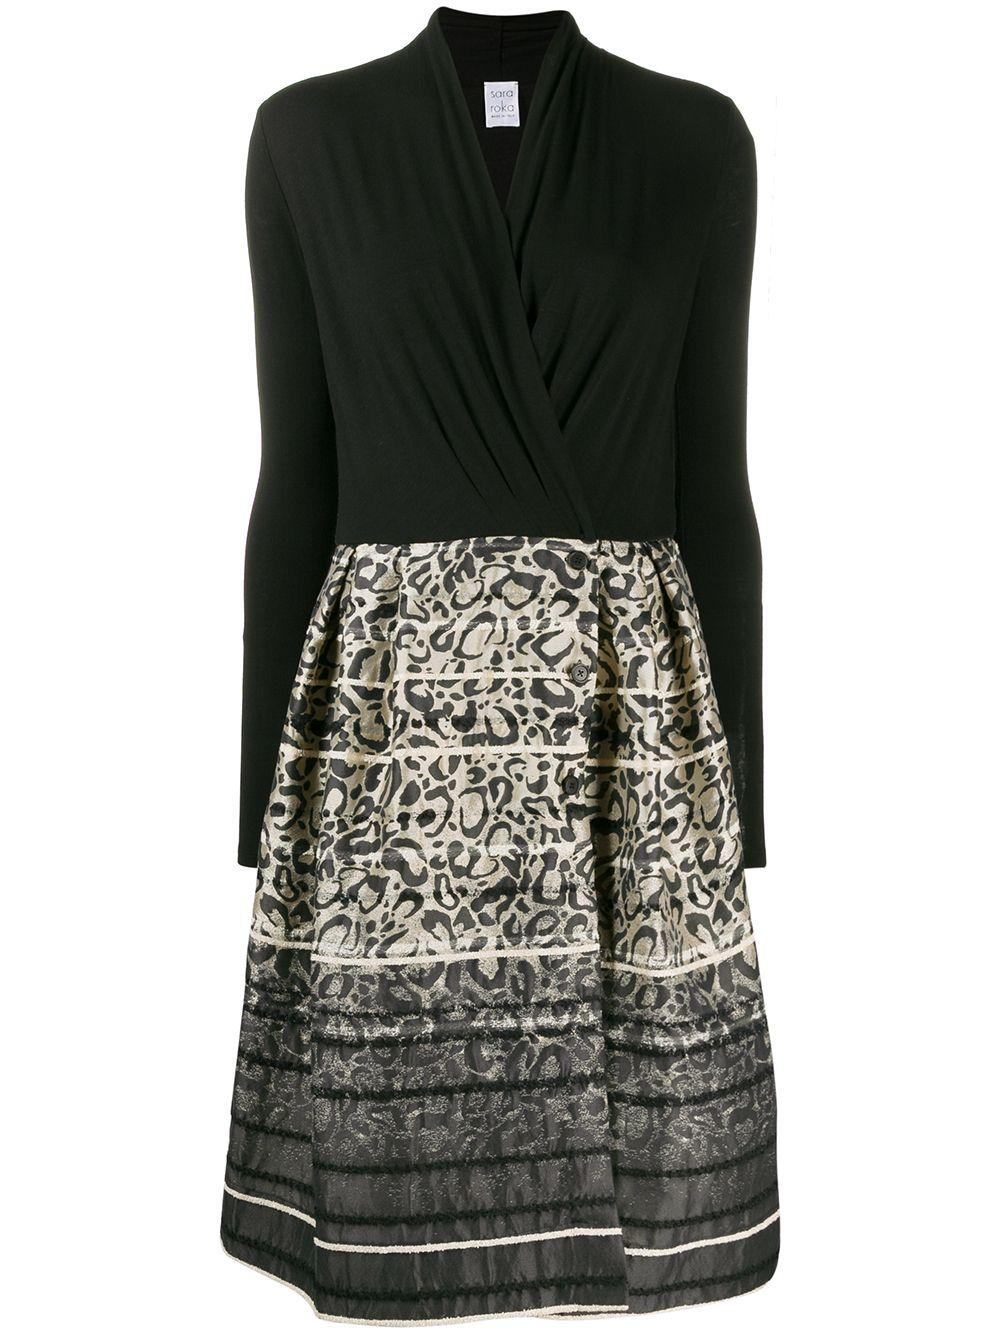 Long Sleeve Wrap Top Dress With Animal Printed Skirt